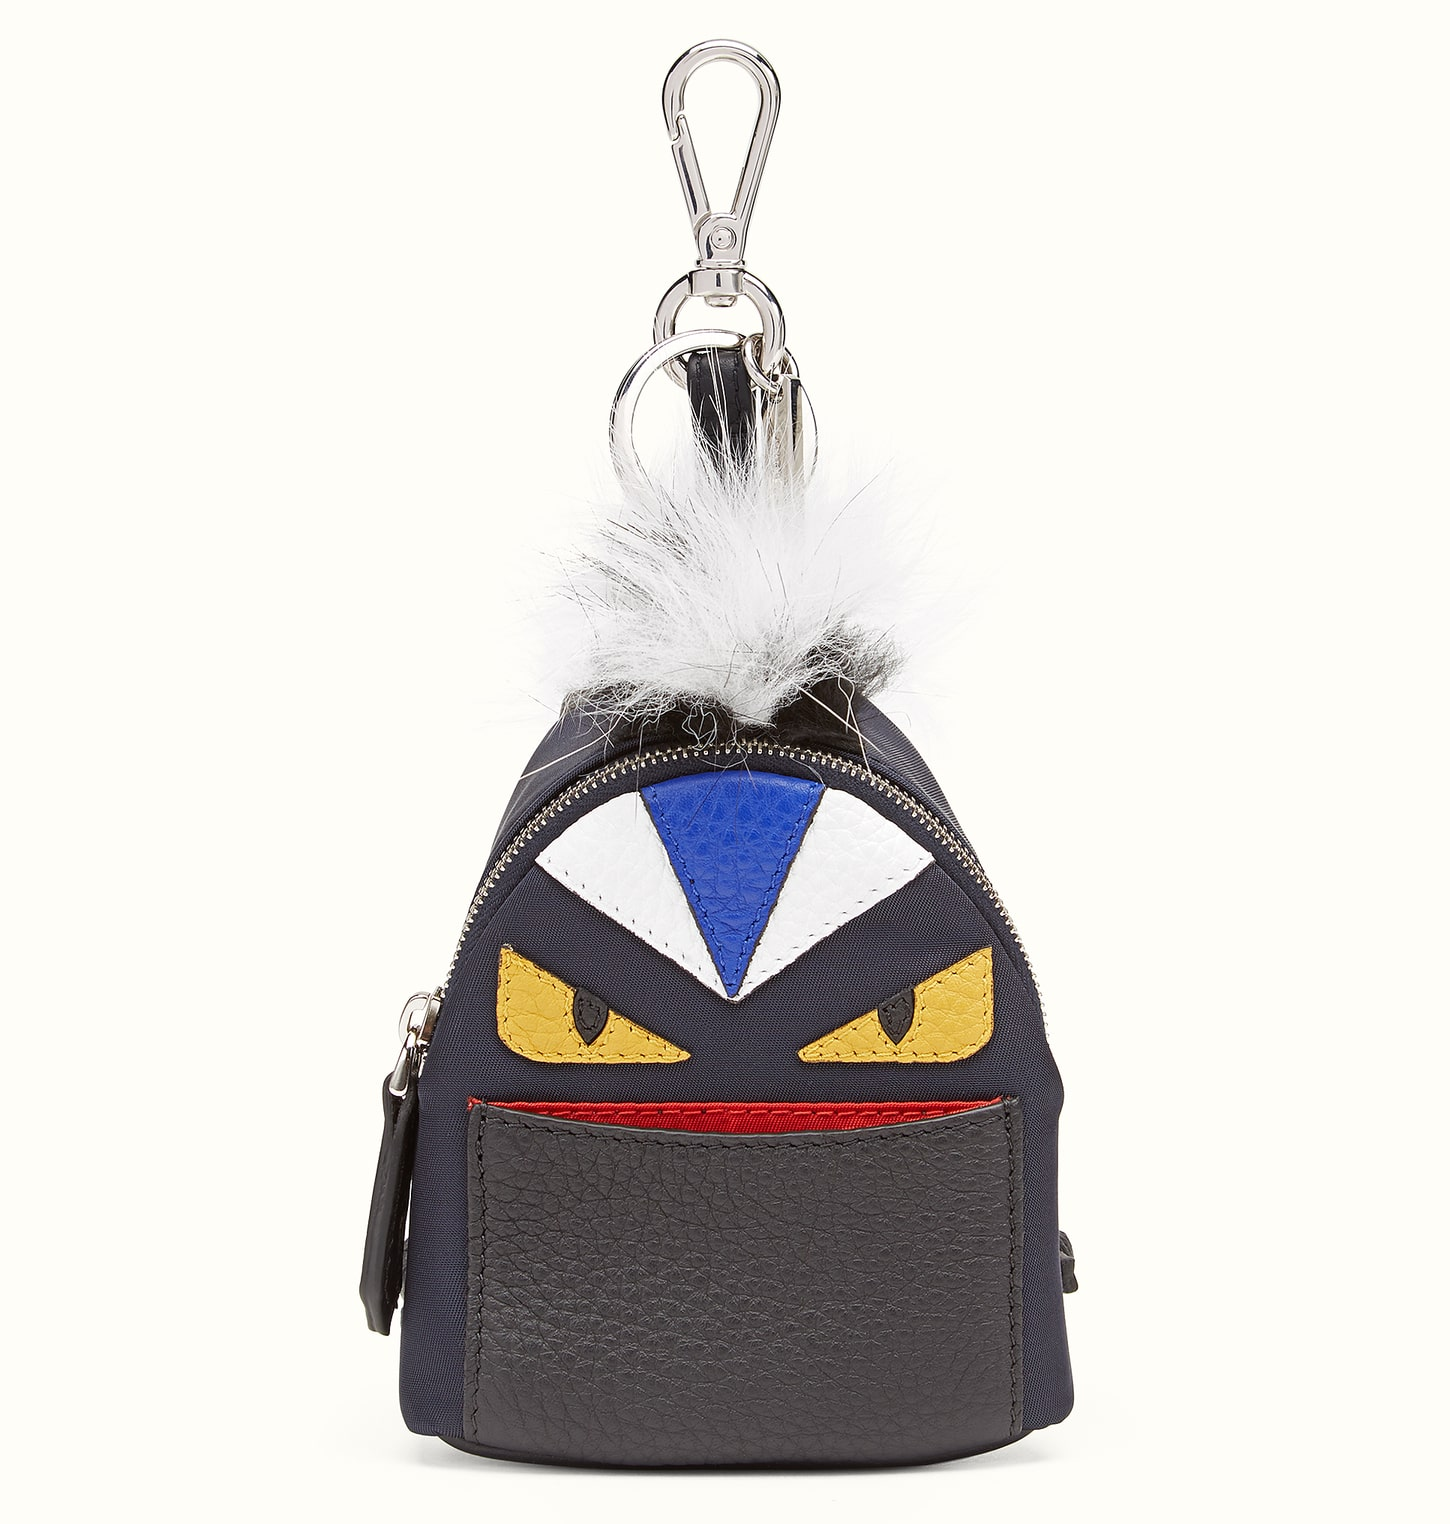 Fendi Black Bag Bugs Backpack Charm - Men